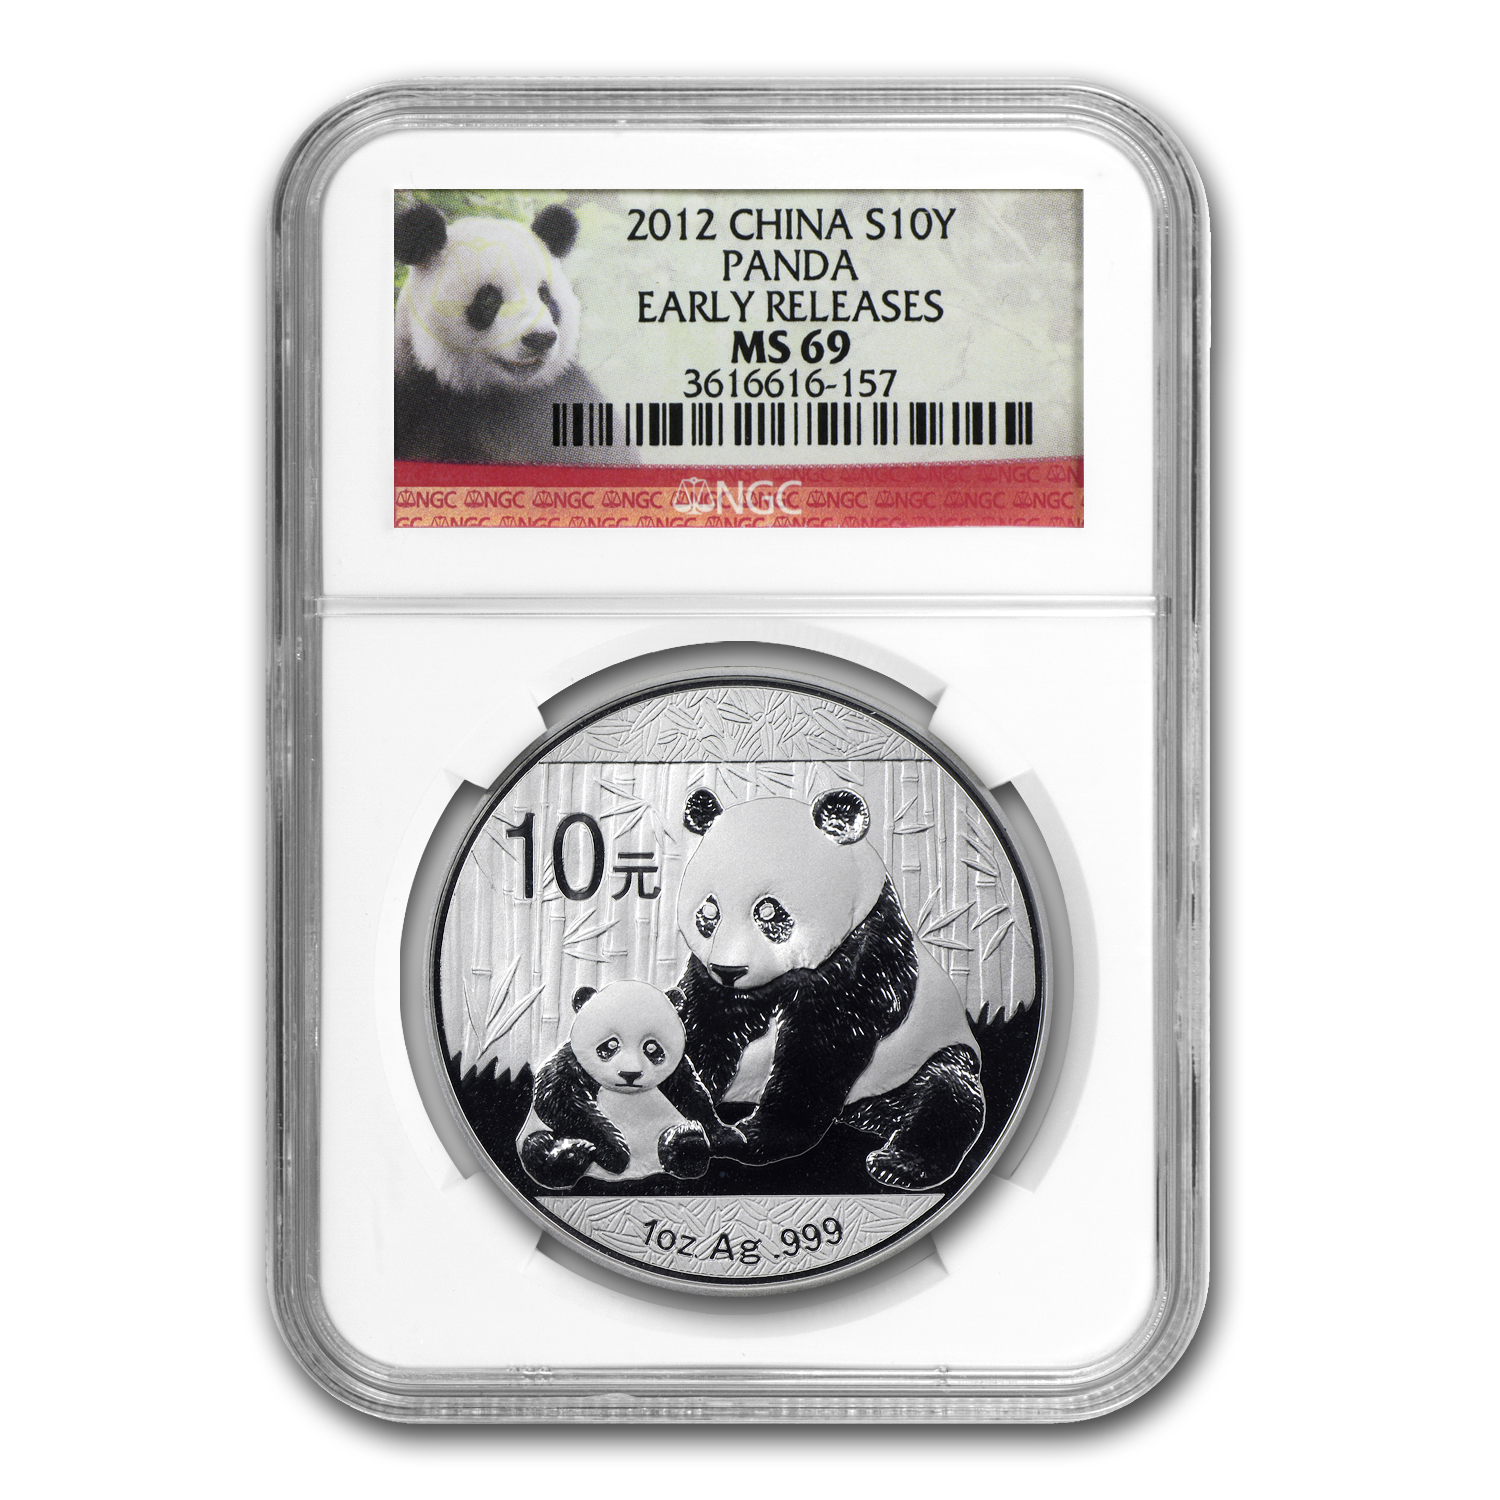 2012 China 1 oz Silver Panda MS-69 NGC (Early Releases)